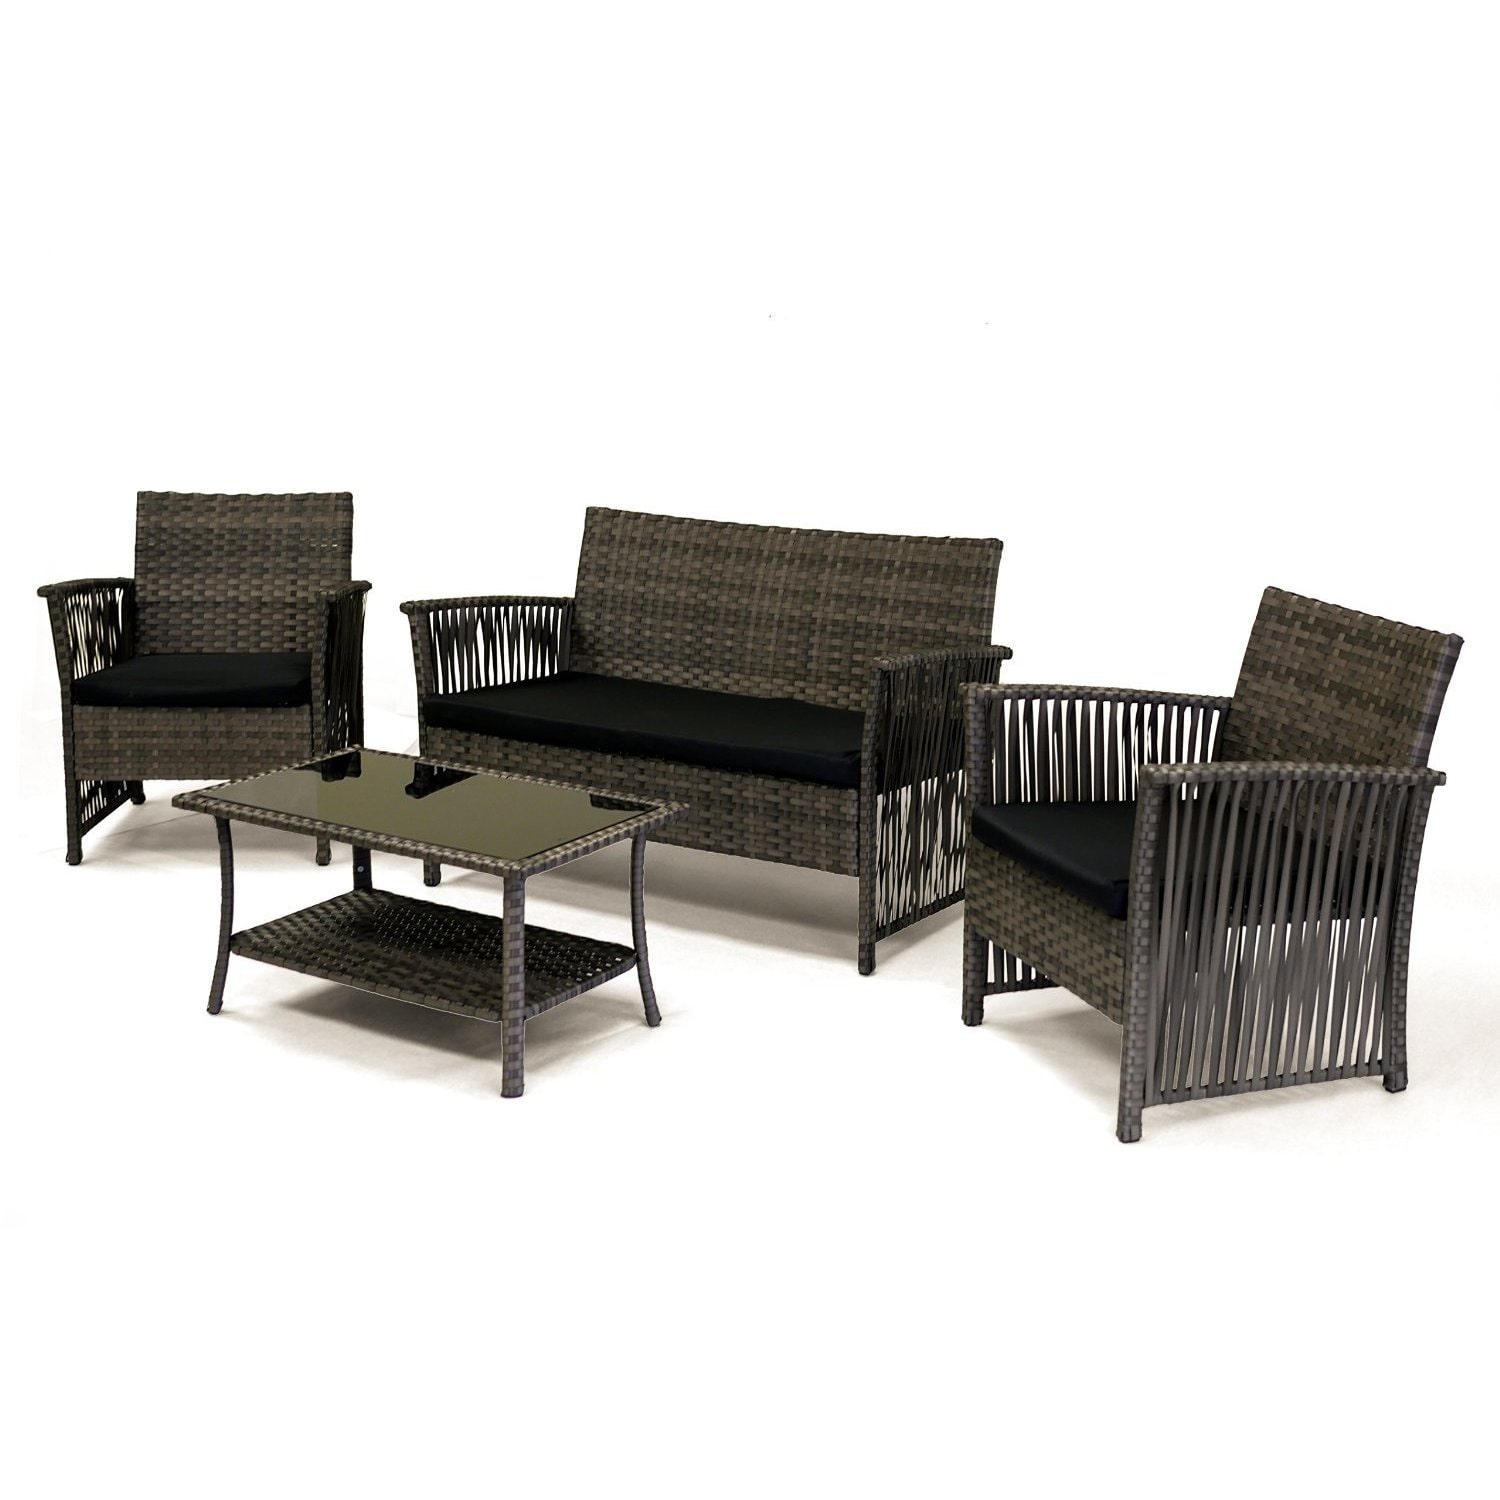 Sol Siesta Manhattan Beach Collection 4 Piece Cushioned Resin Wicker  Outdoor Patio Set